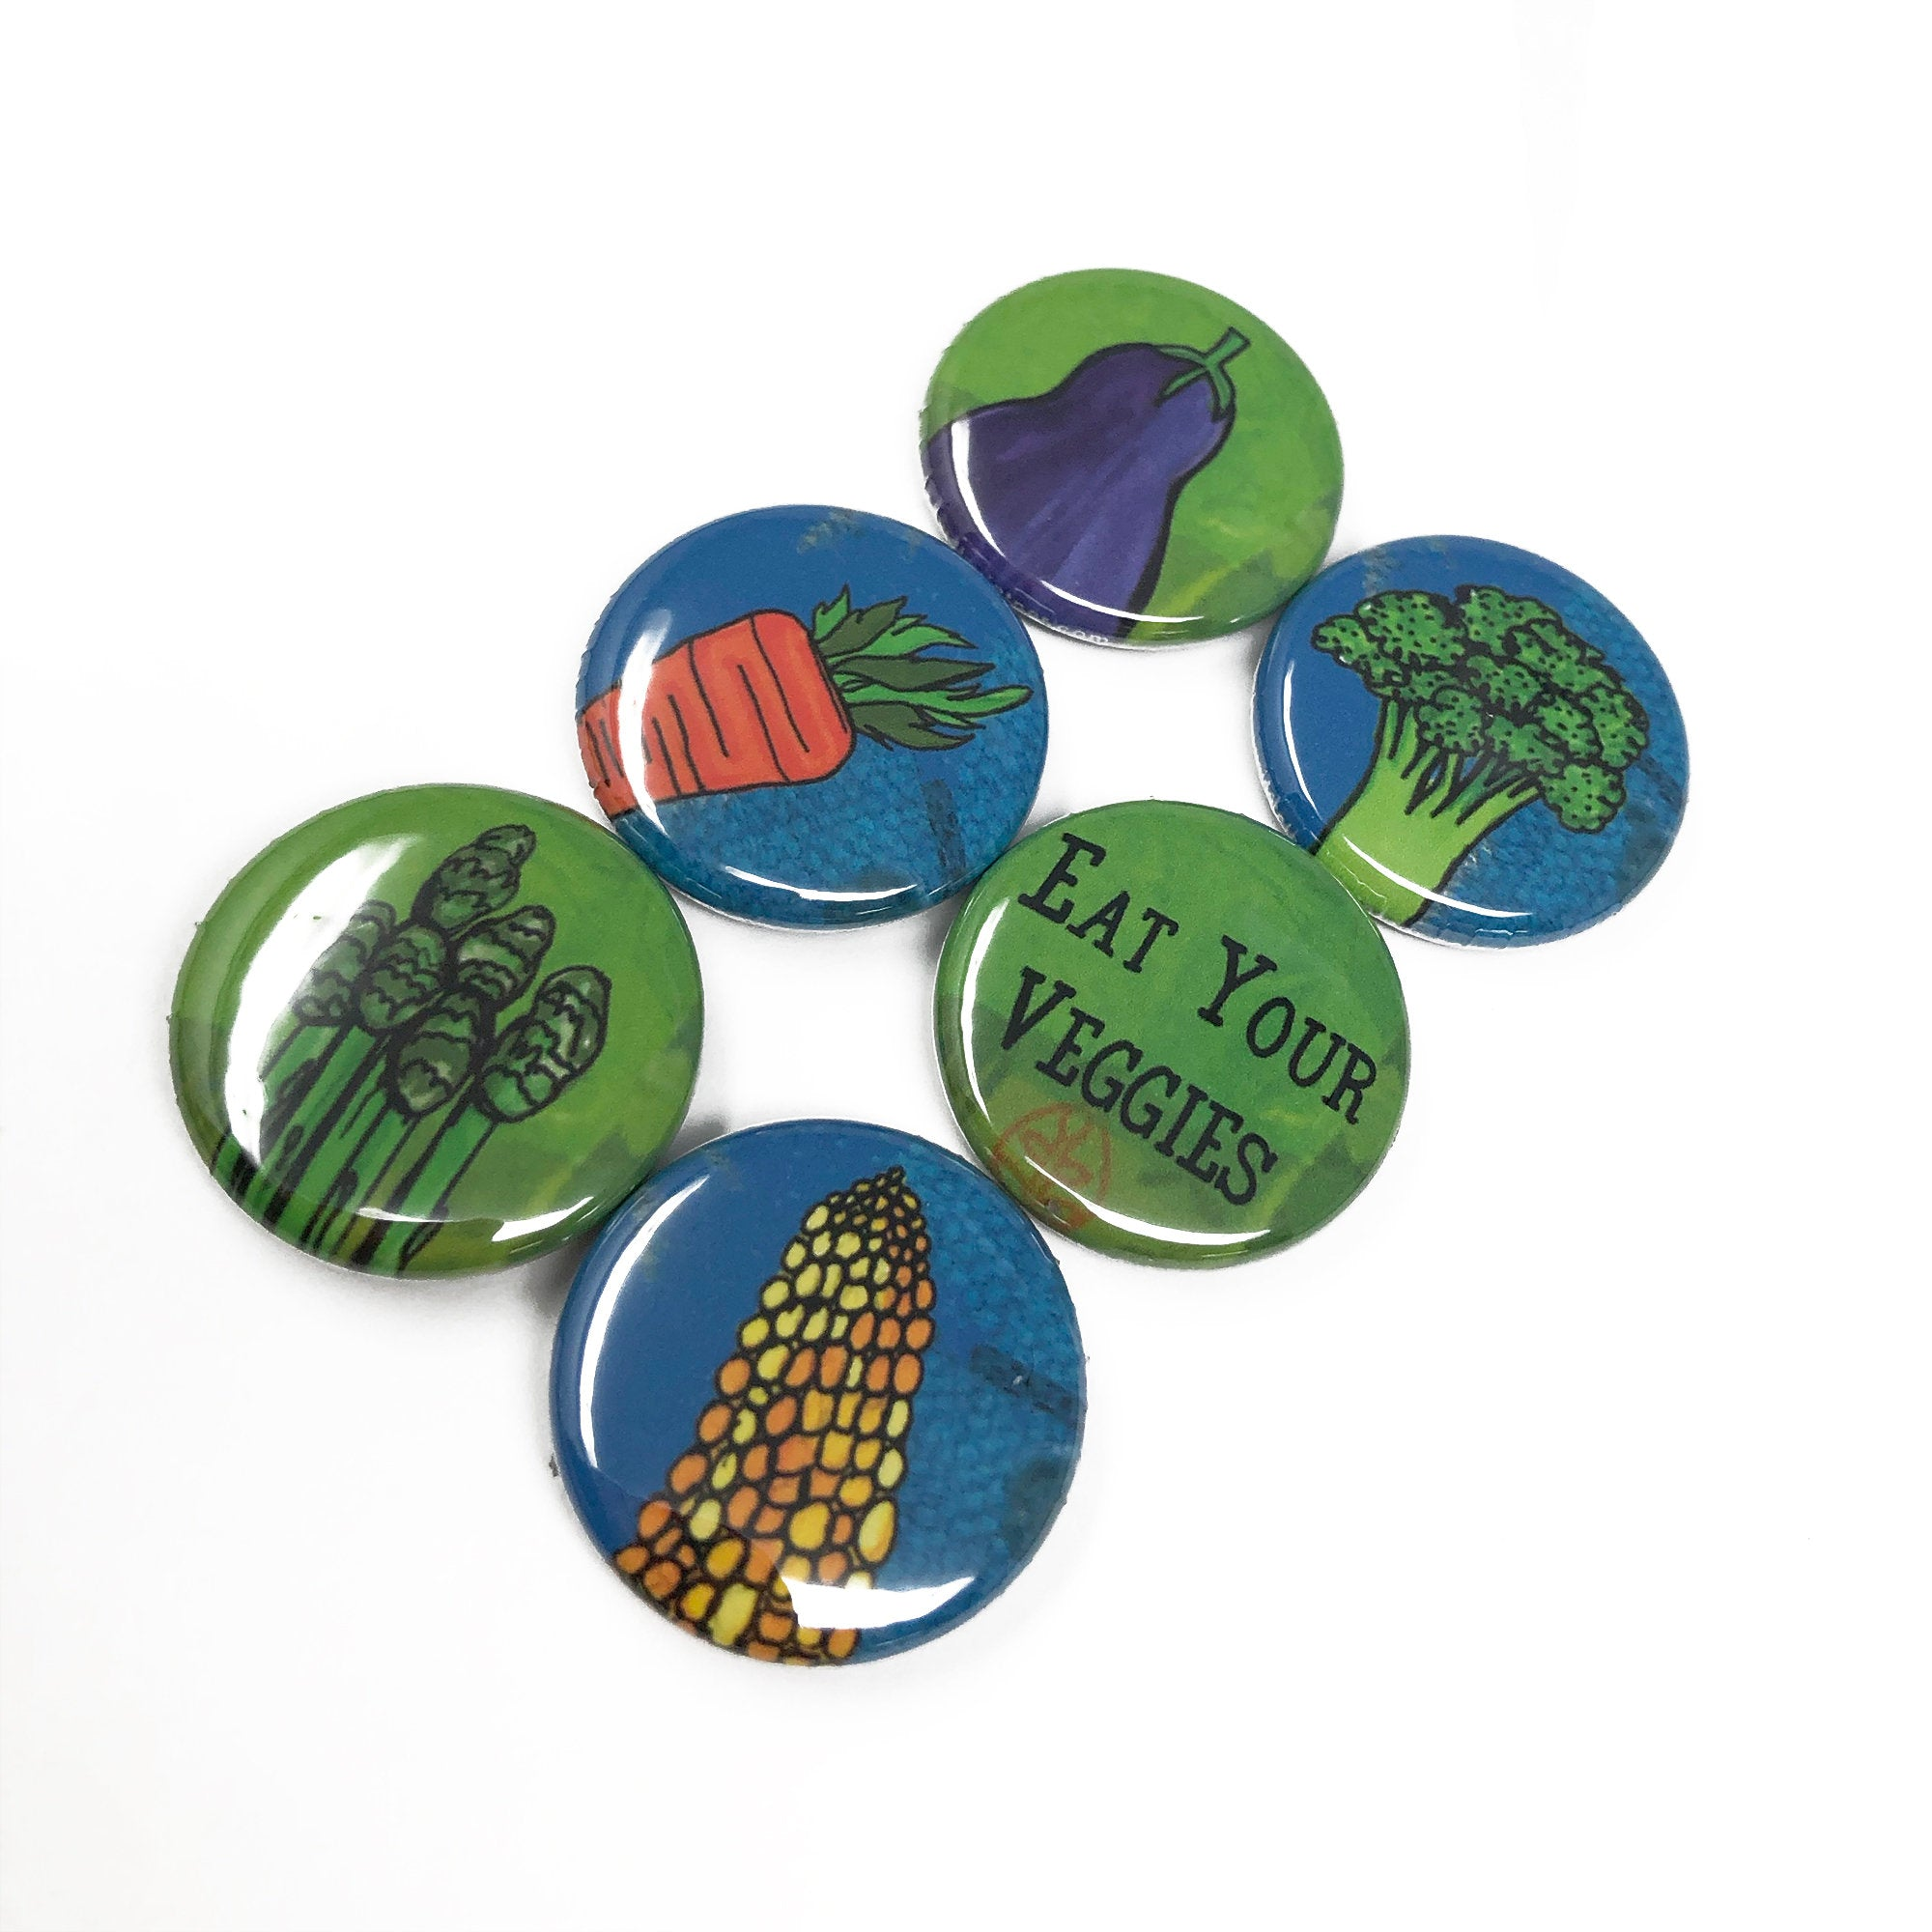 Eat Your Veggies Magnet or Pin Back Button Set - Vegetables - Healthy Food - Fridge Magnets or Pins